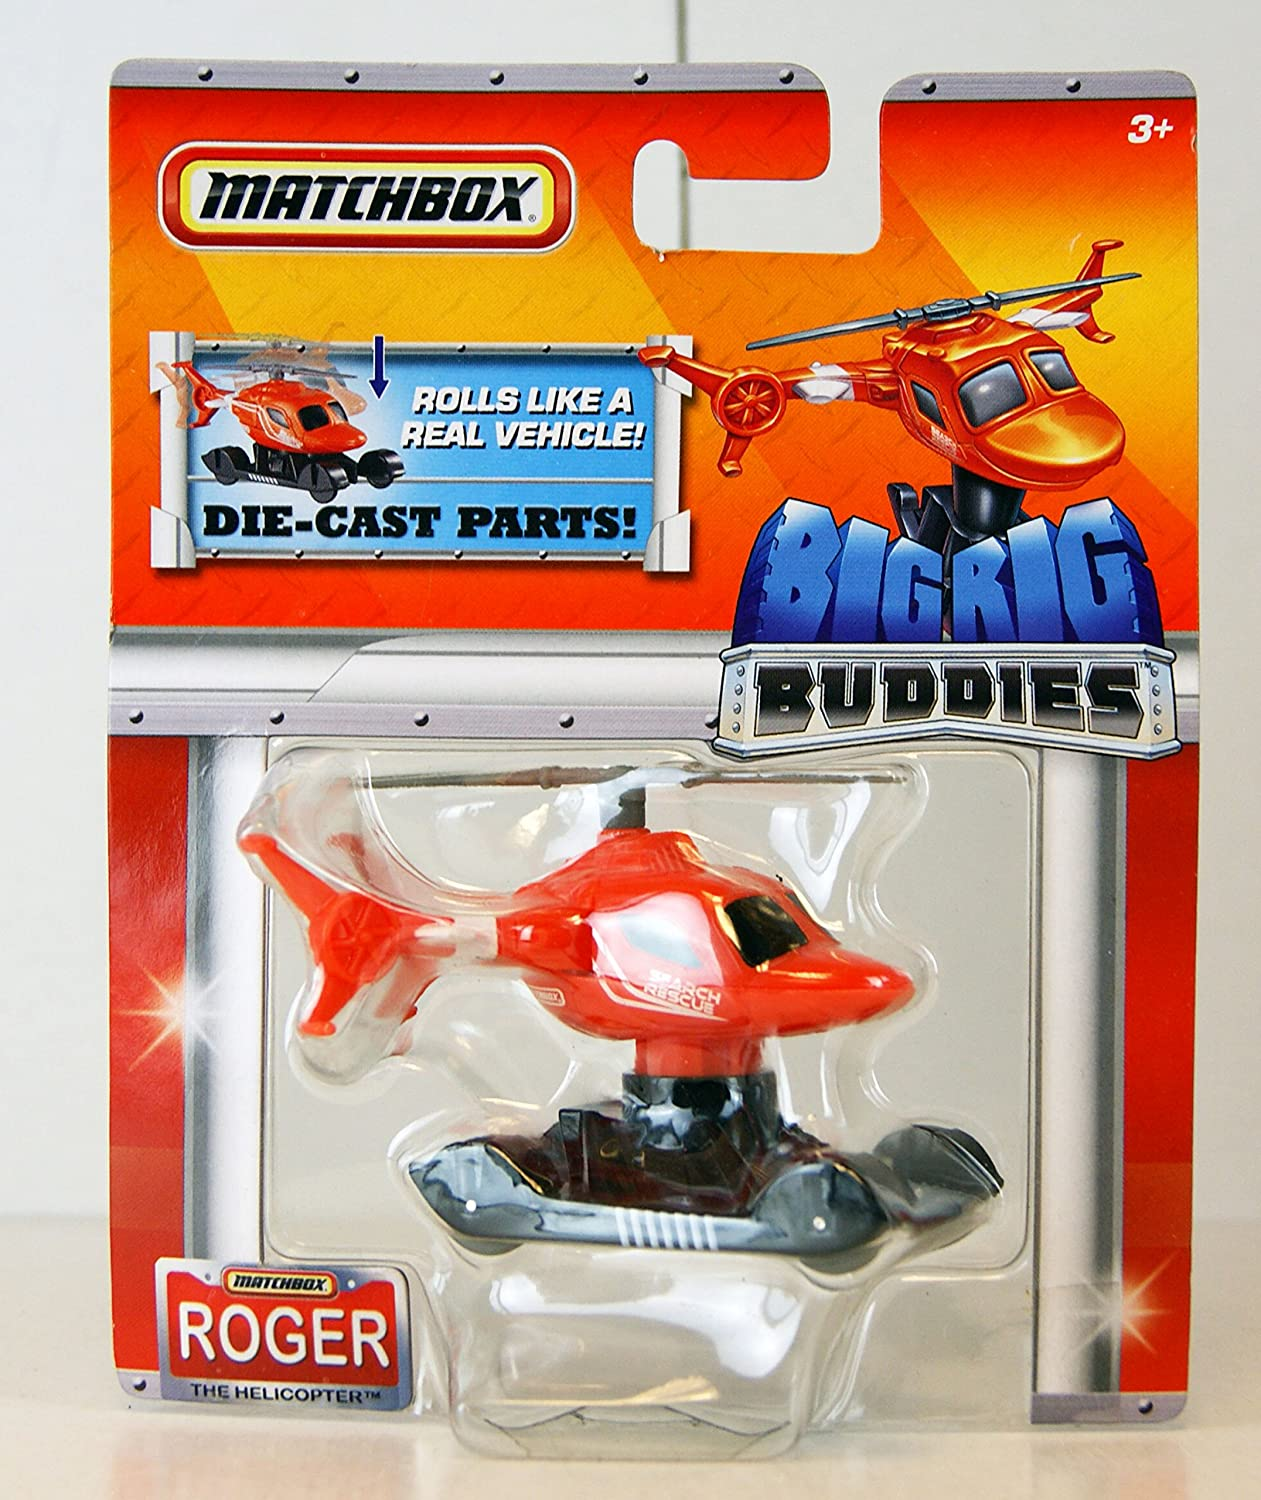 Roger The Helicopter Big Rig Buddies Die-Cast Parts Matchbox